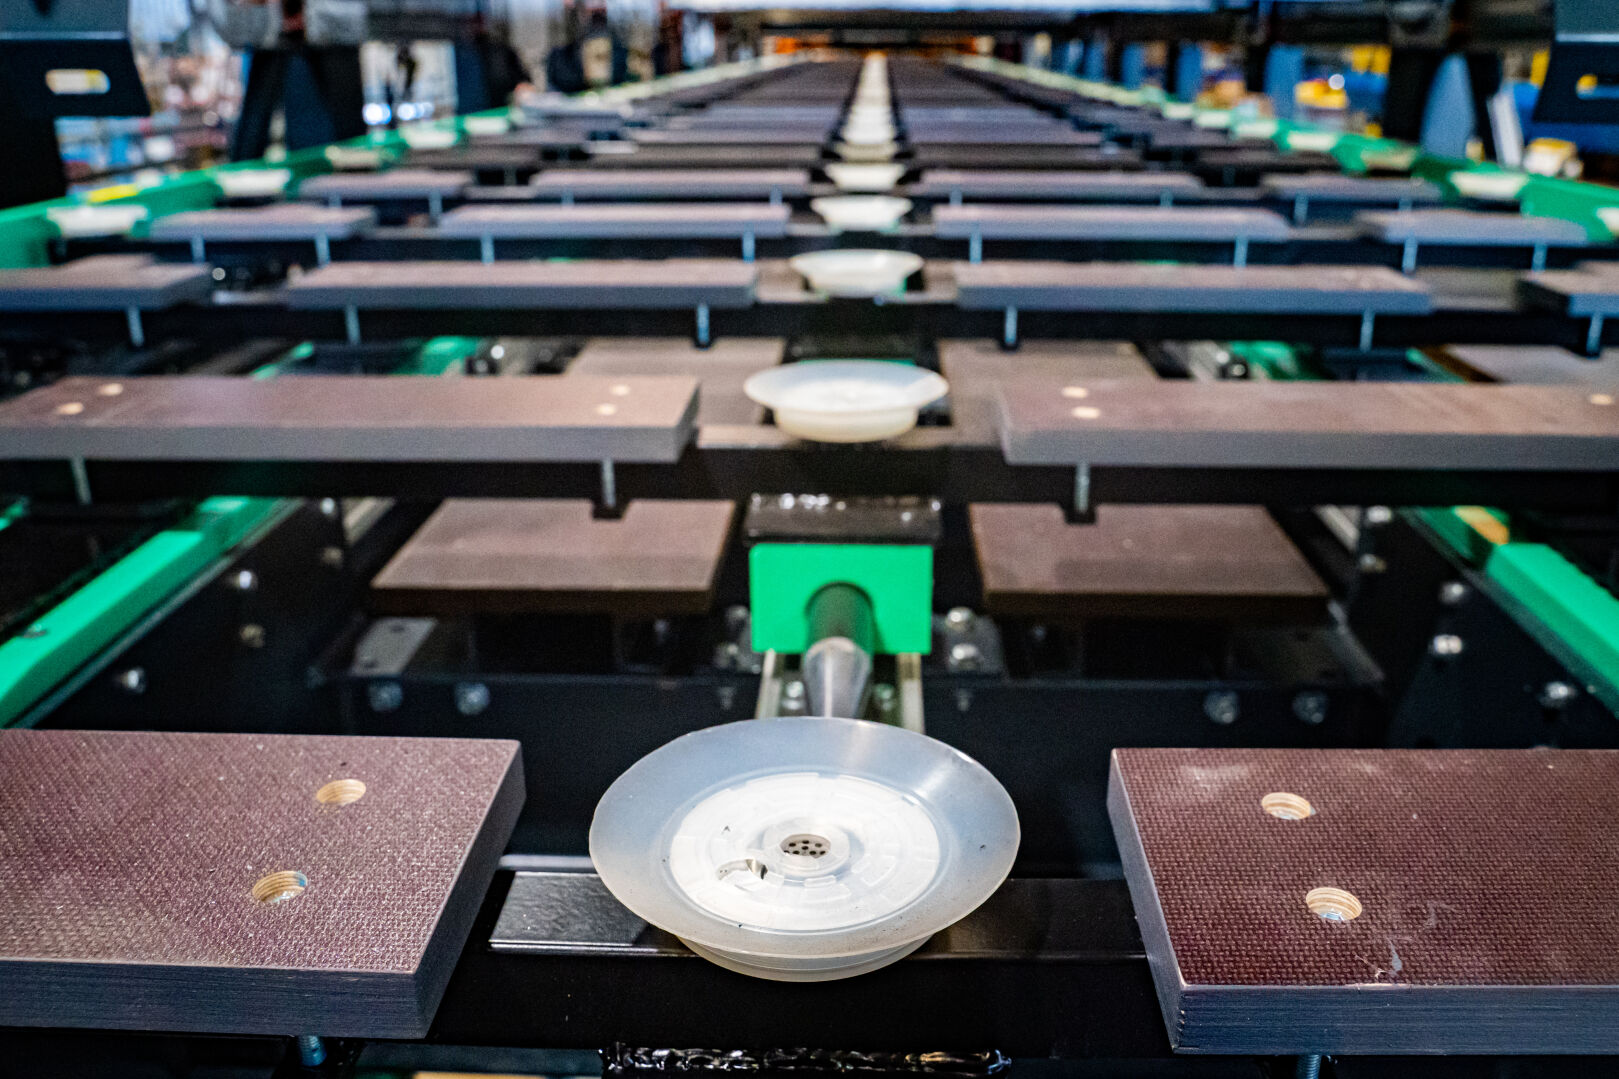 Suction cup conveyor transfers panels steady from scanning to repair stations resulting ability to handle warped panels and minimal need to reject warped panels.